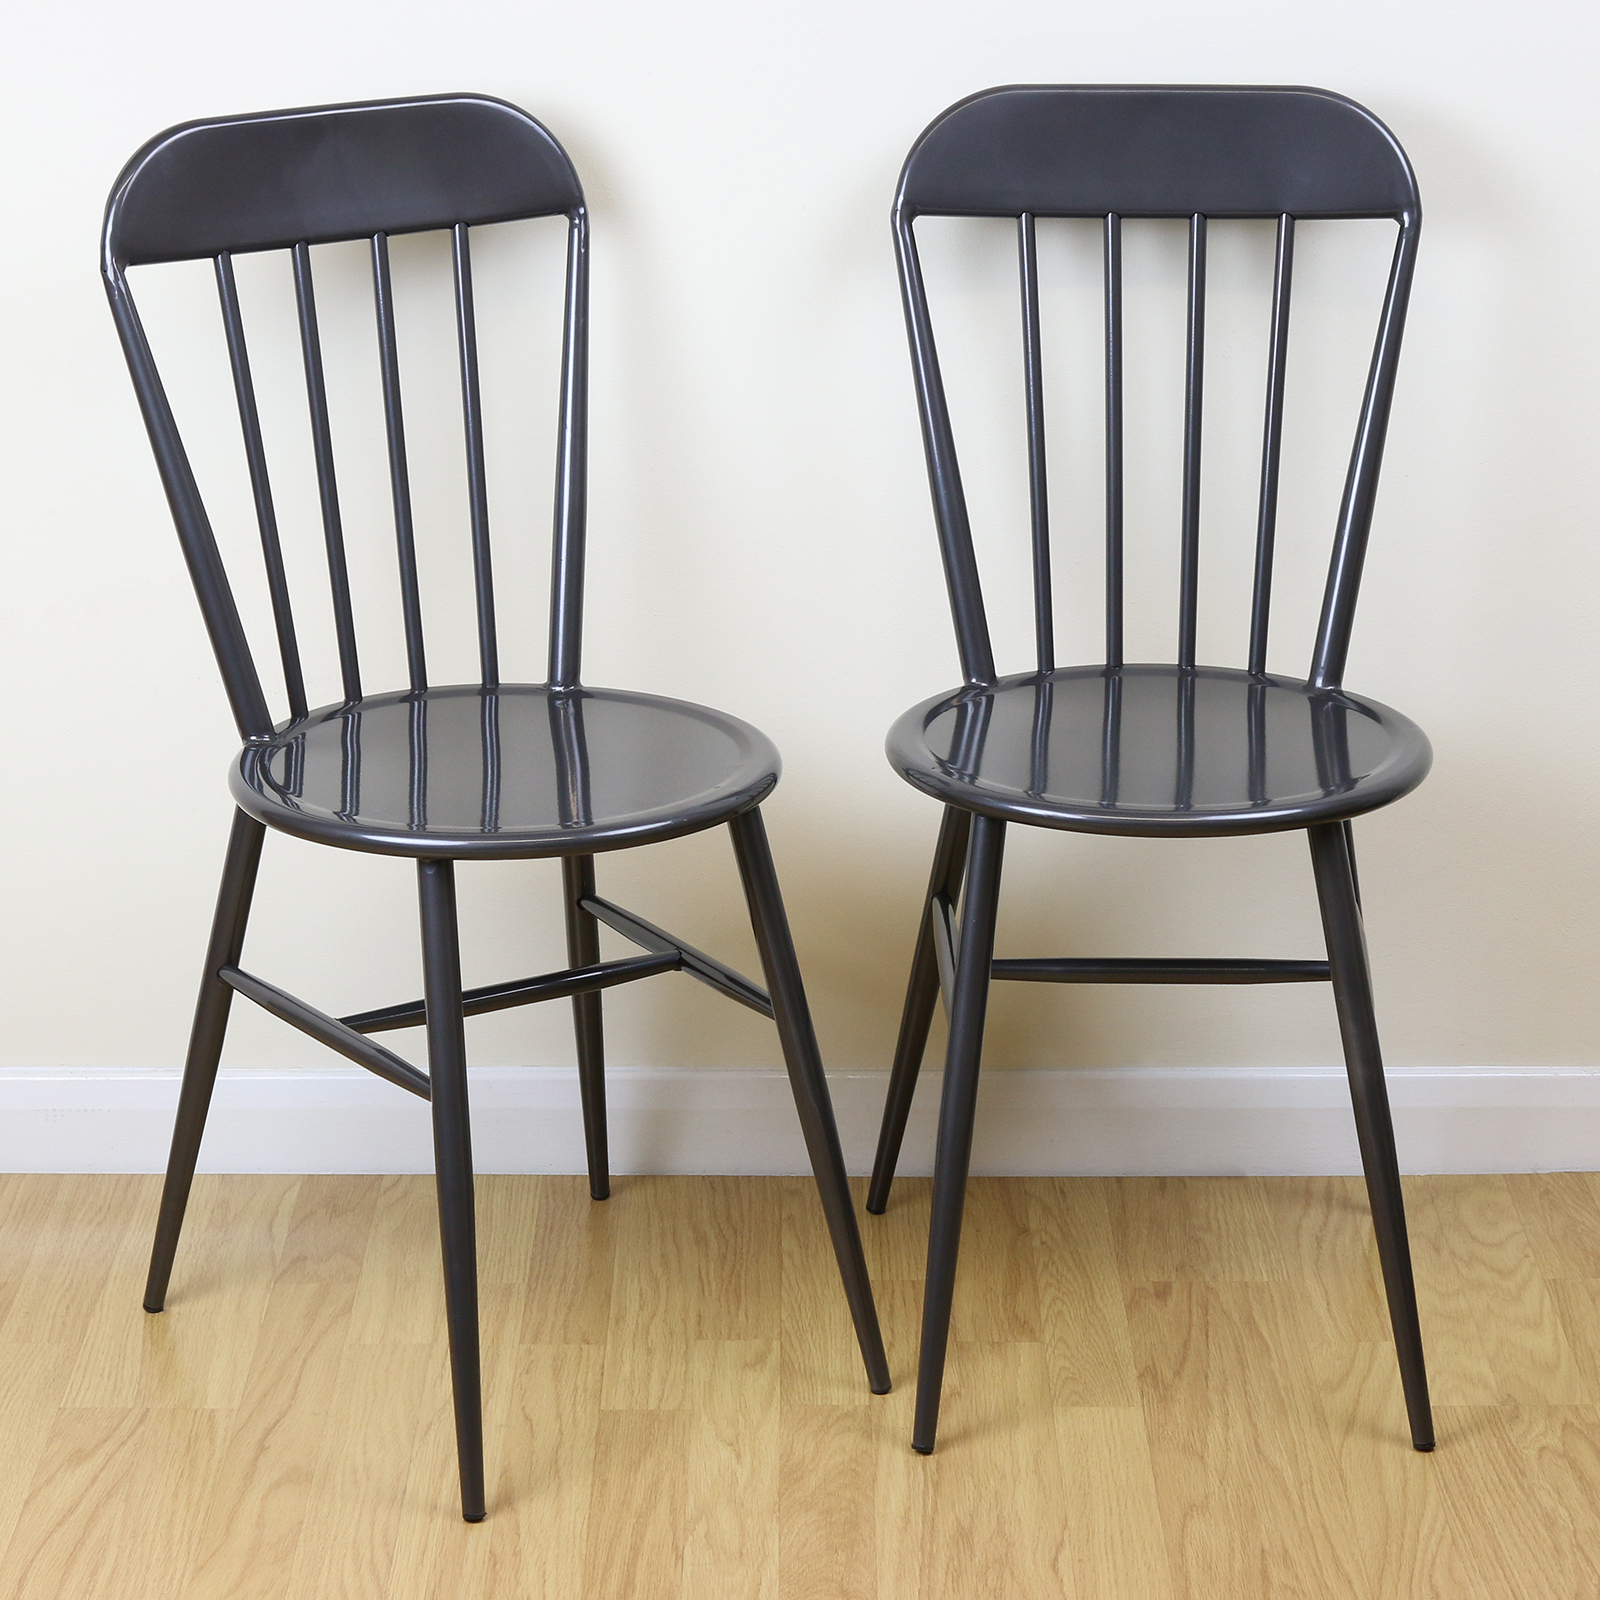 grey kitchen chairs throne for sale set of 2 metal industrial dining